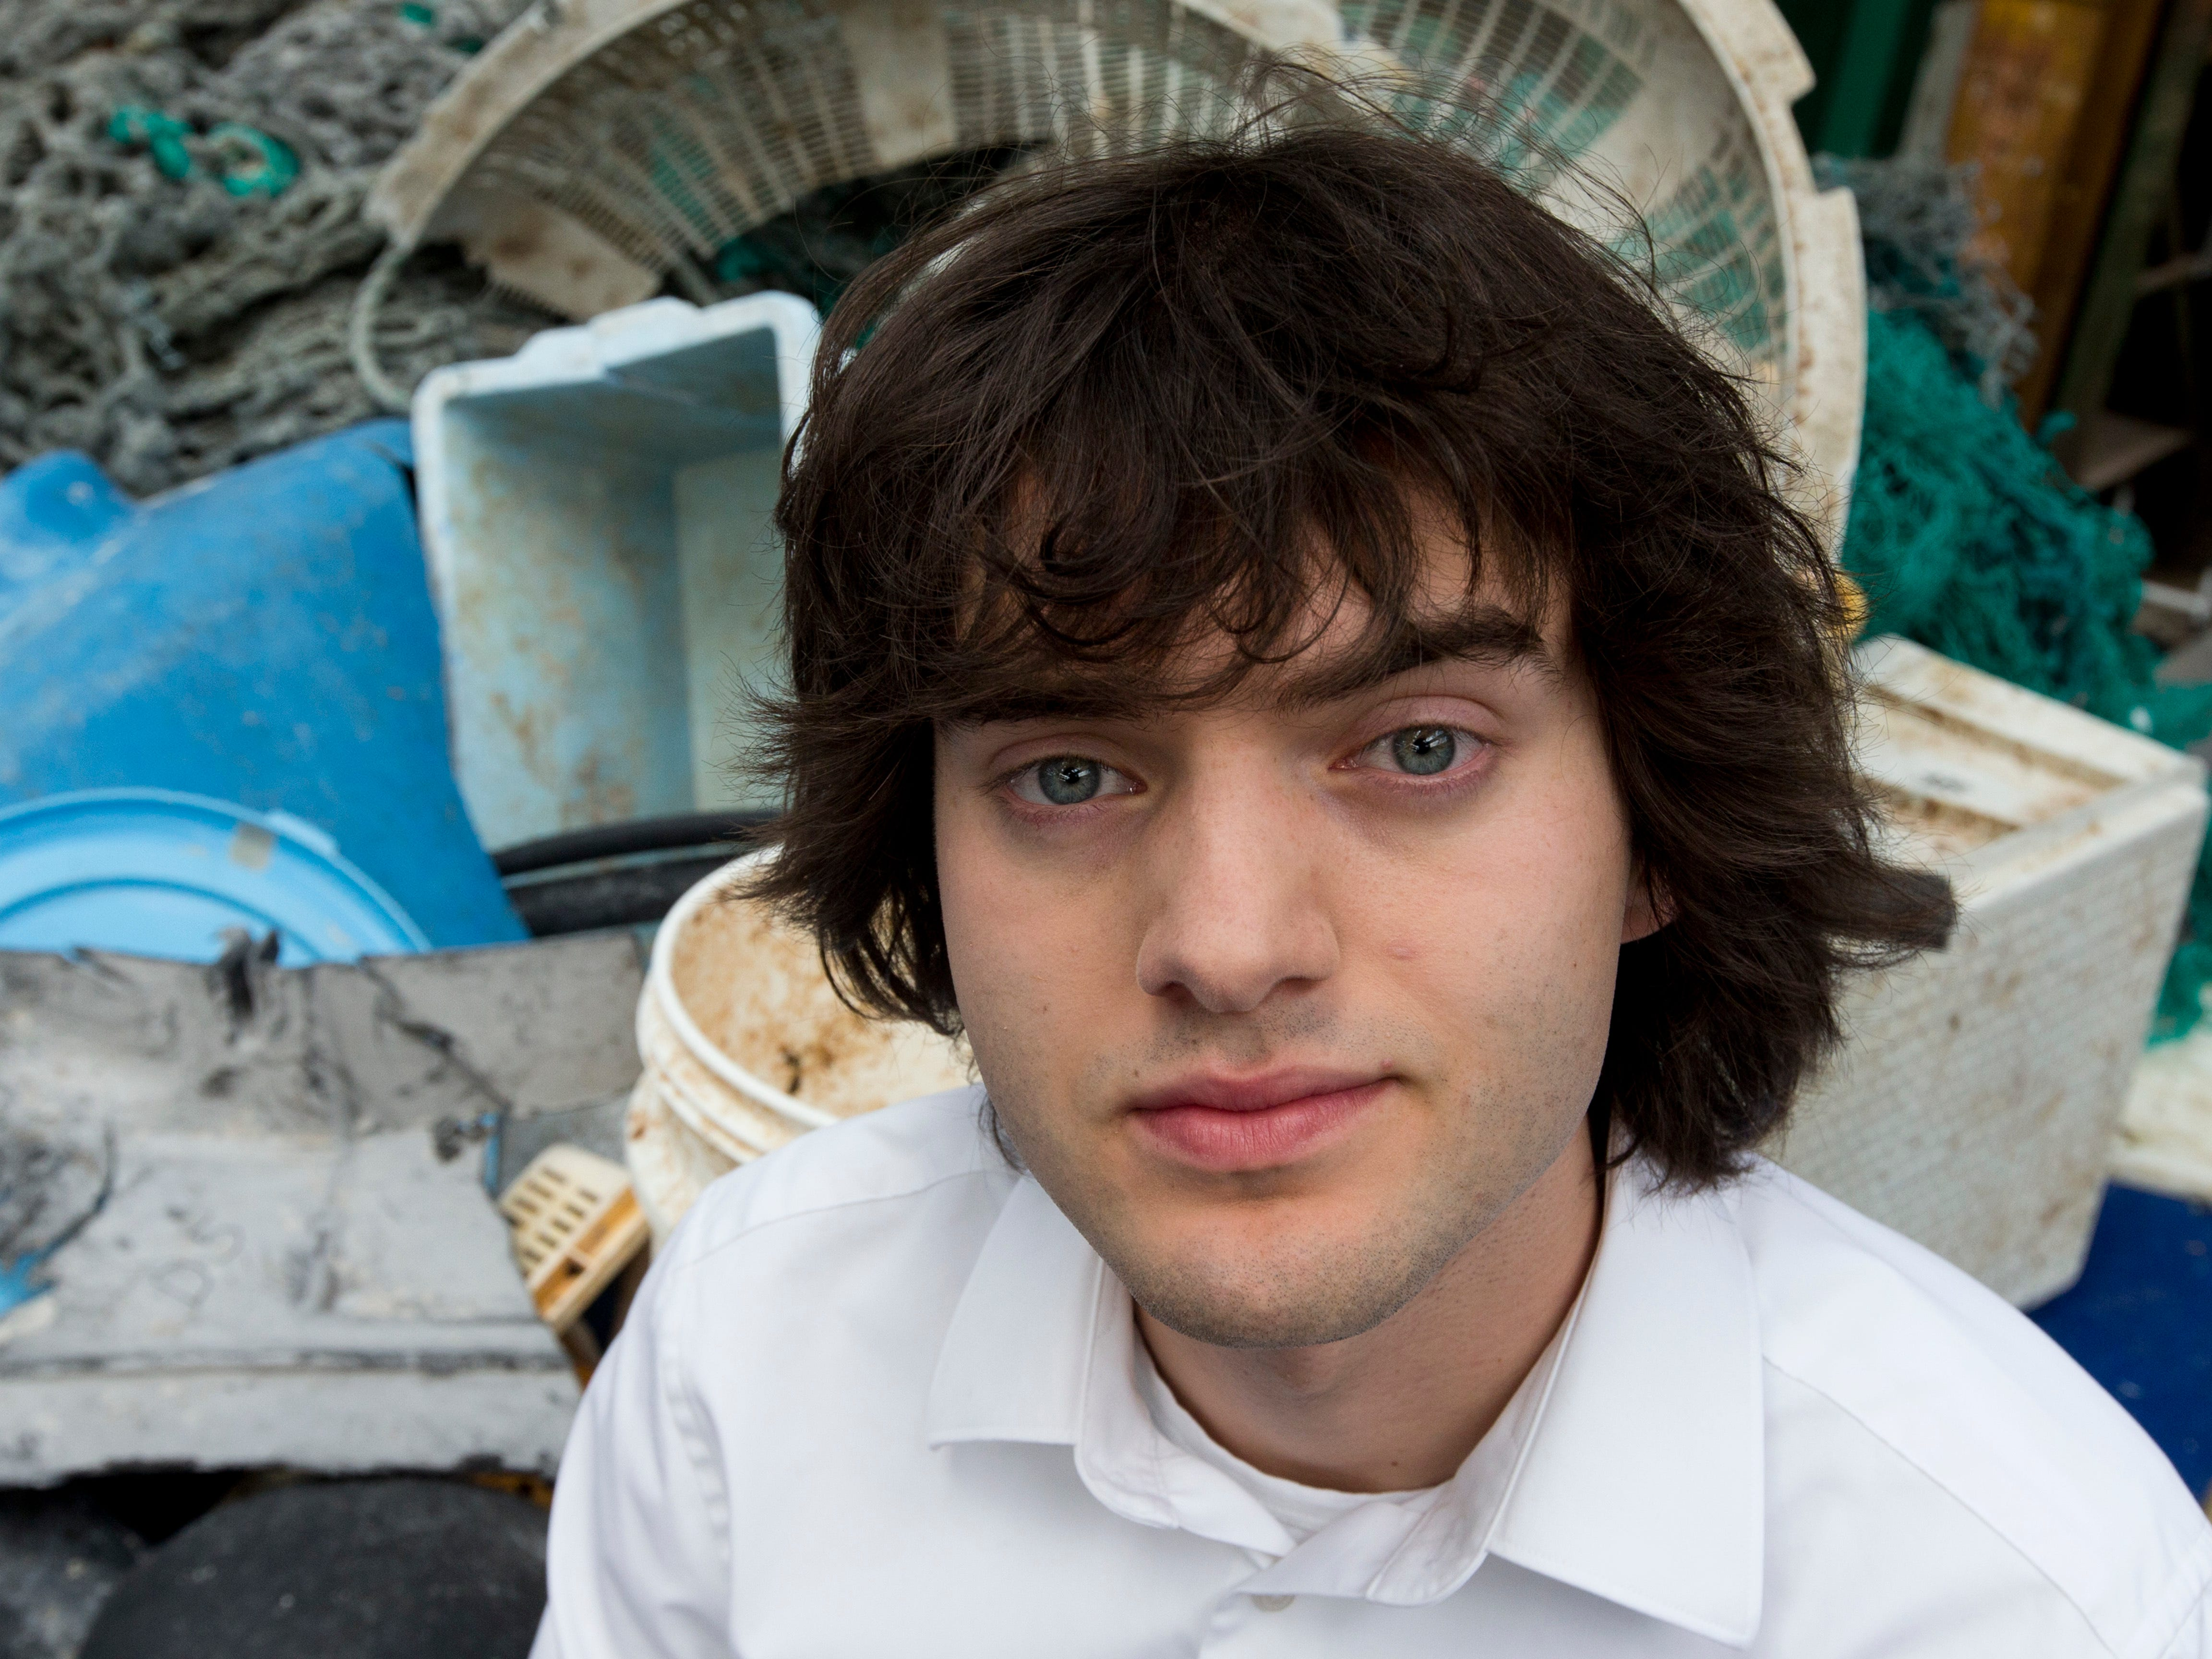 Dutch innovator Boyan Slat poses for a portrait in 2017 next to a pile of plastic garbage in Utrecht, Netherlands. Slat launched the Pacific Ocean cleanup project, including the floating boom that traveled to the Pacific garbage patch.